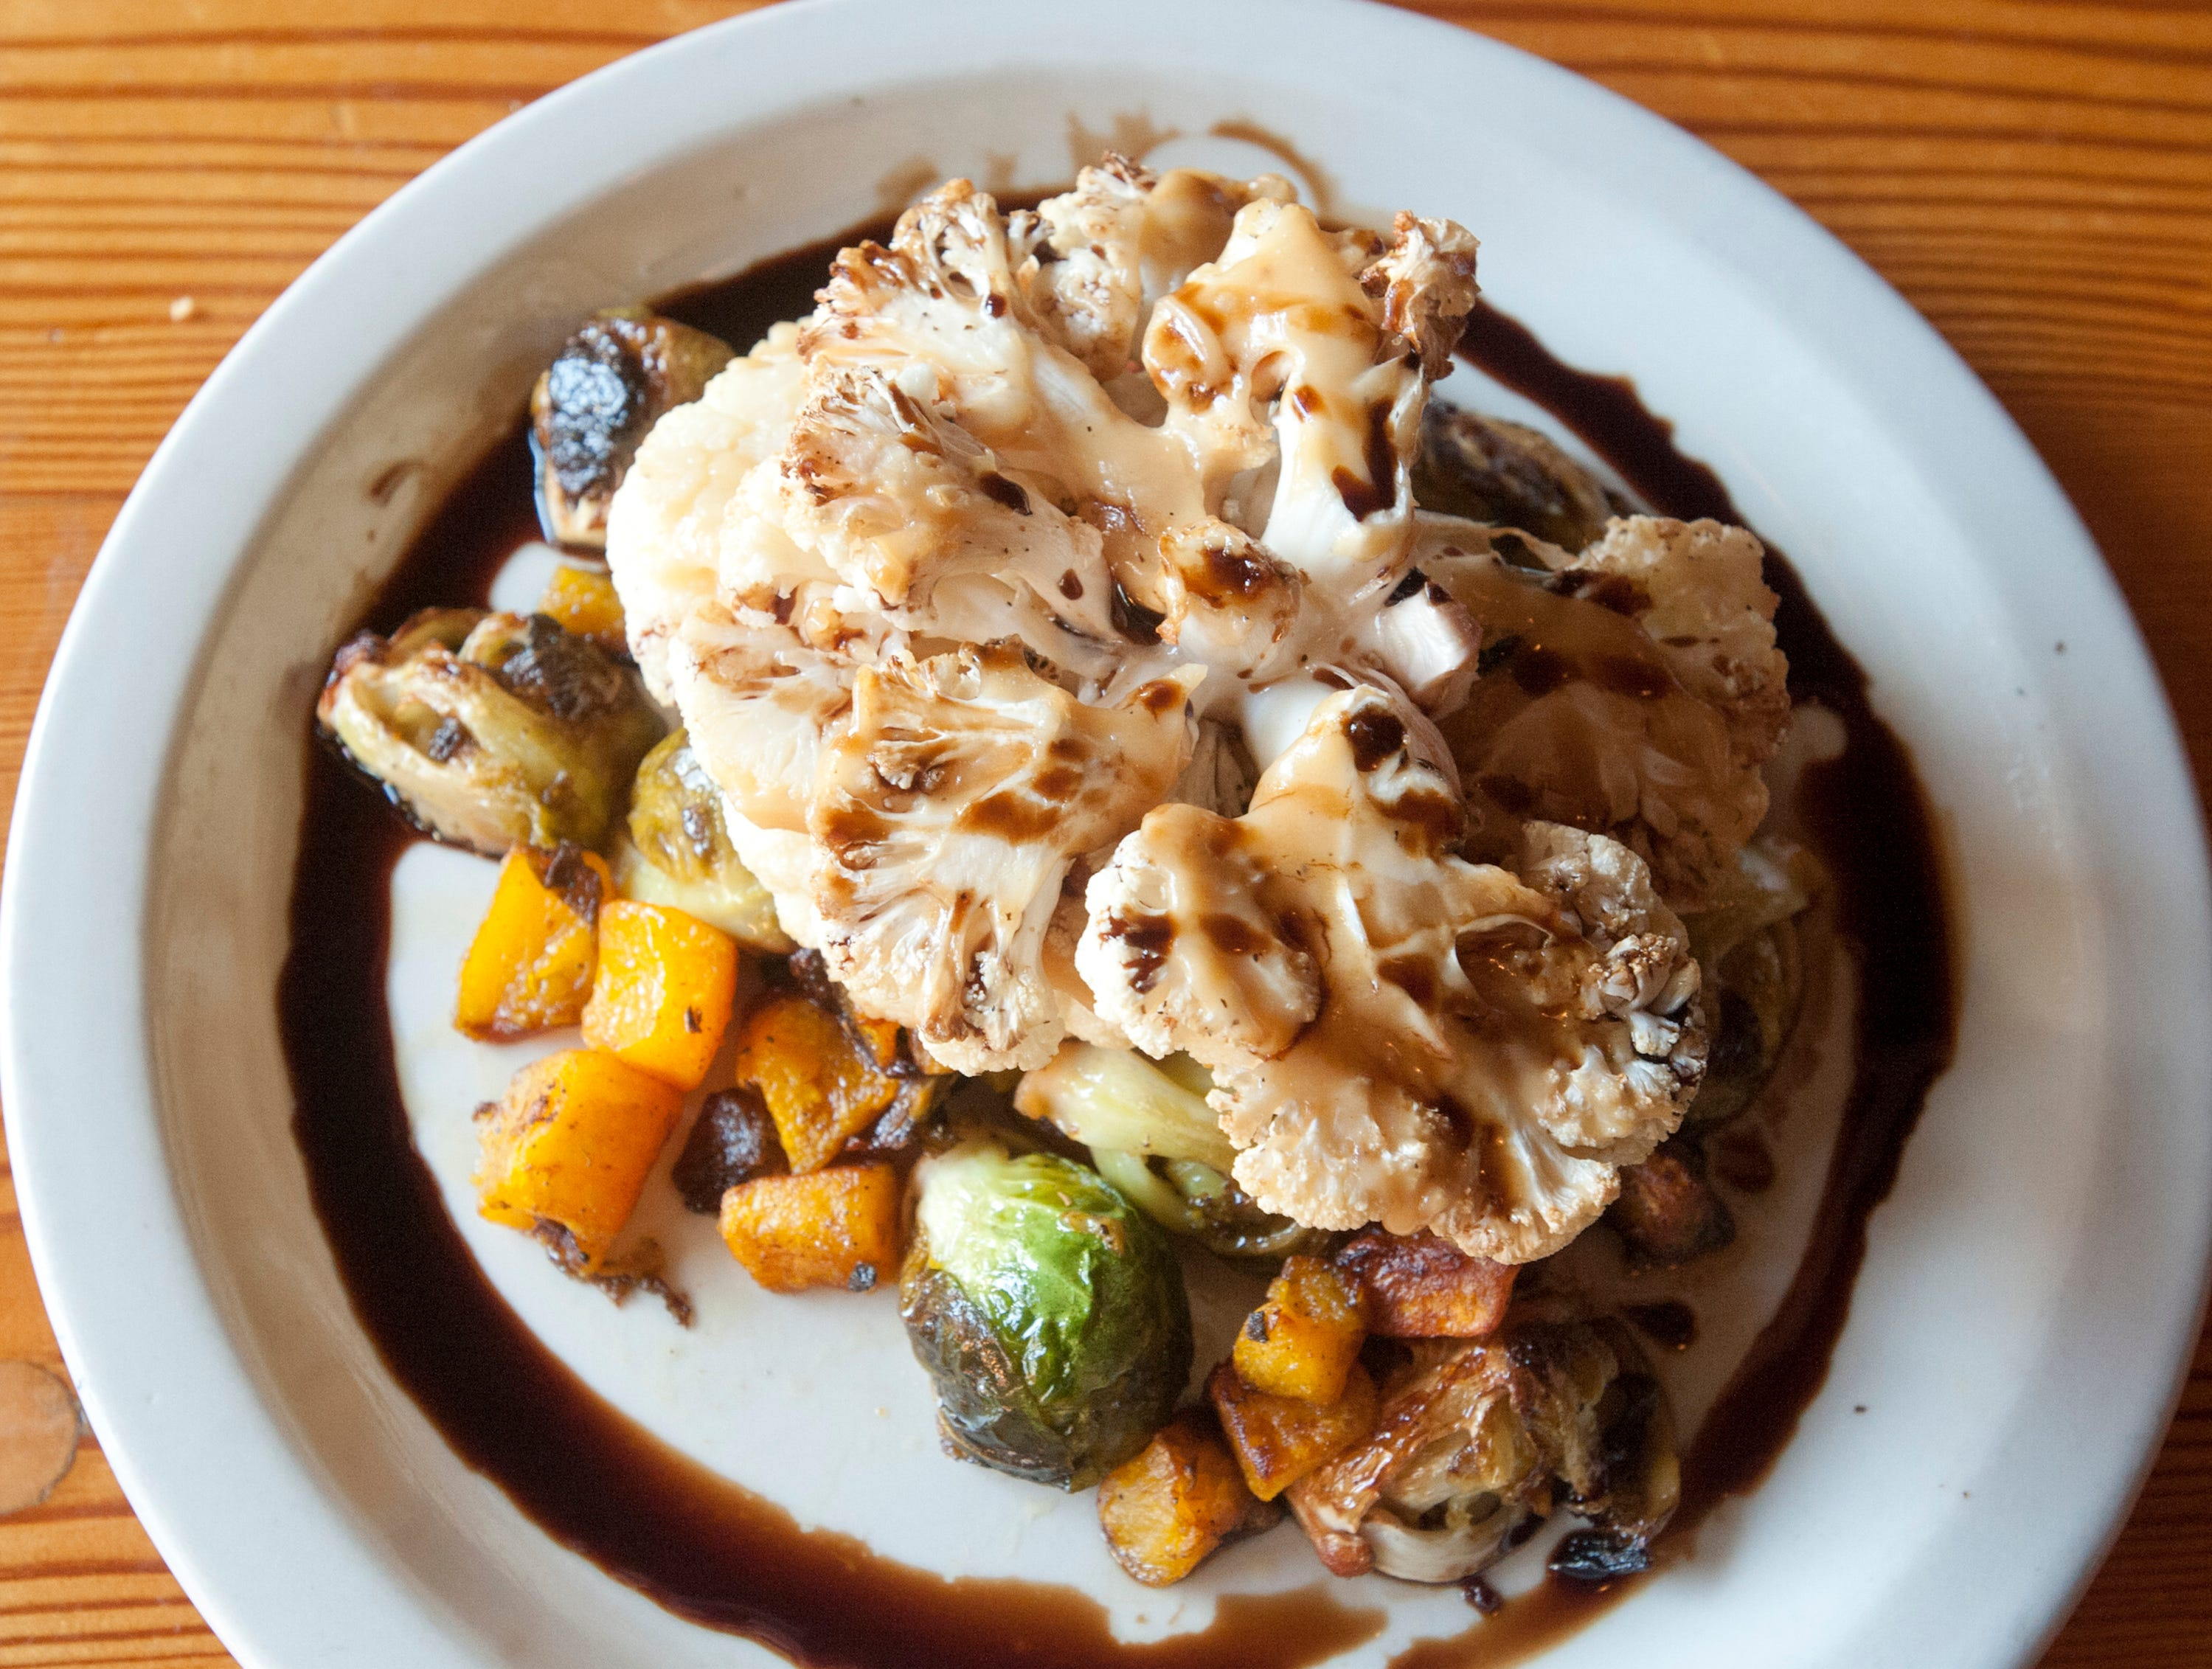 The Silver Dollar Bar and Restaurant's cauliflower steak is accompanied by roasted Brussel sprouts, butternut squash, sage butter, and a15-year-old aged balsamic sauce.